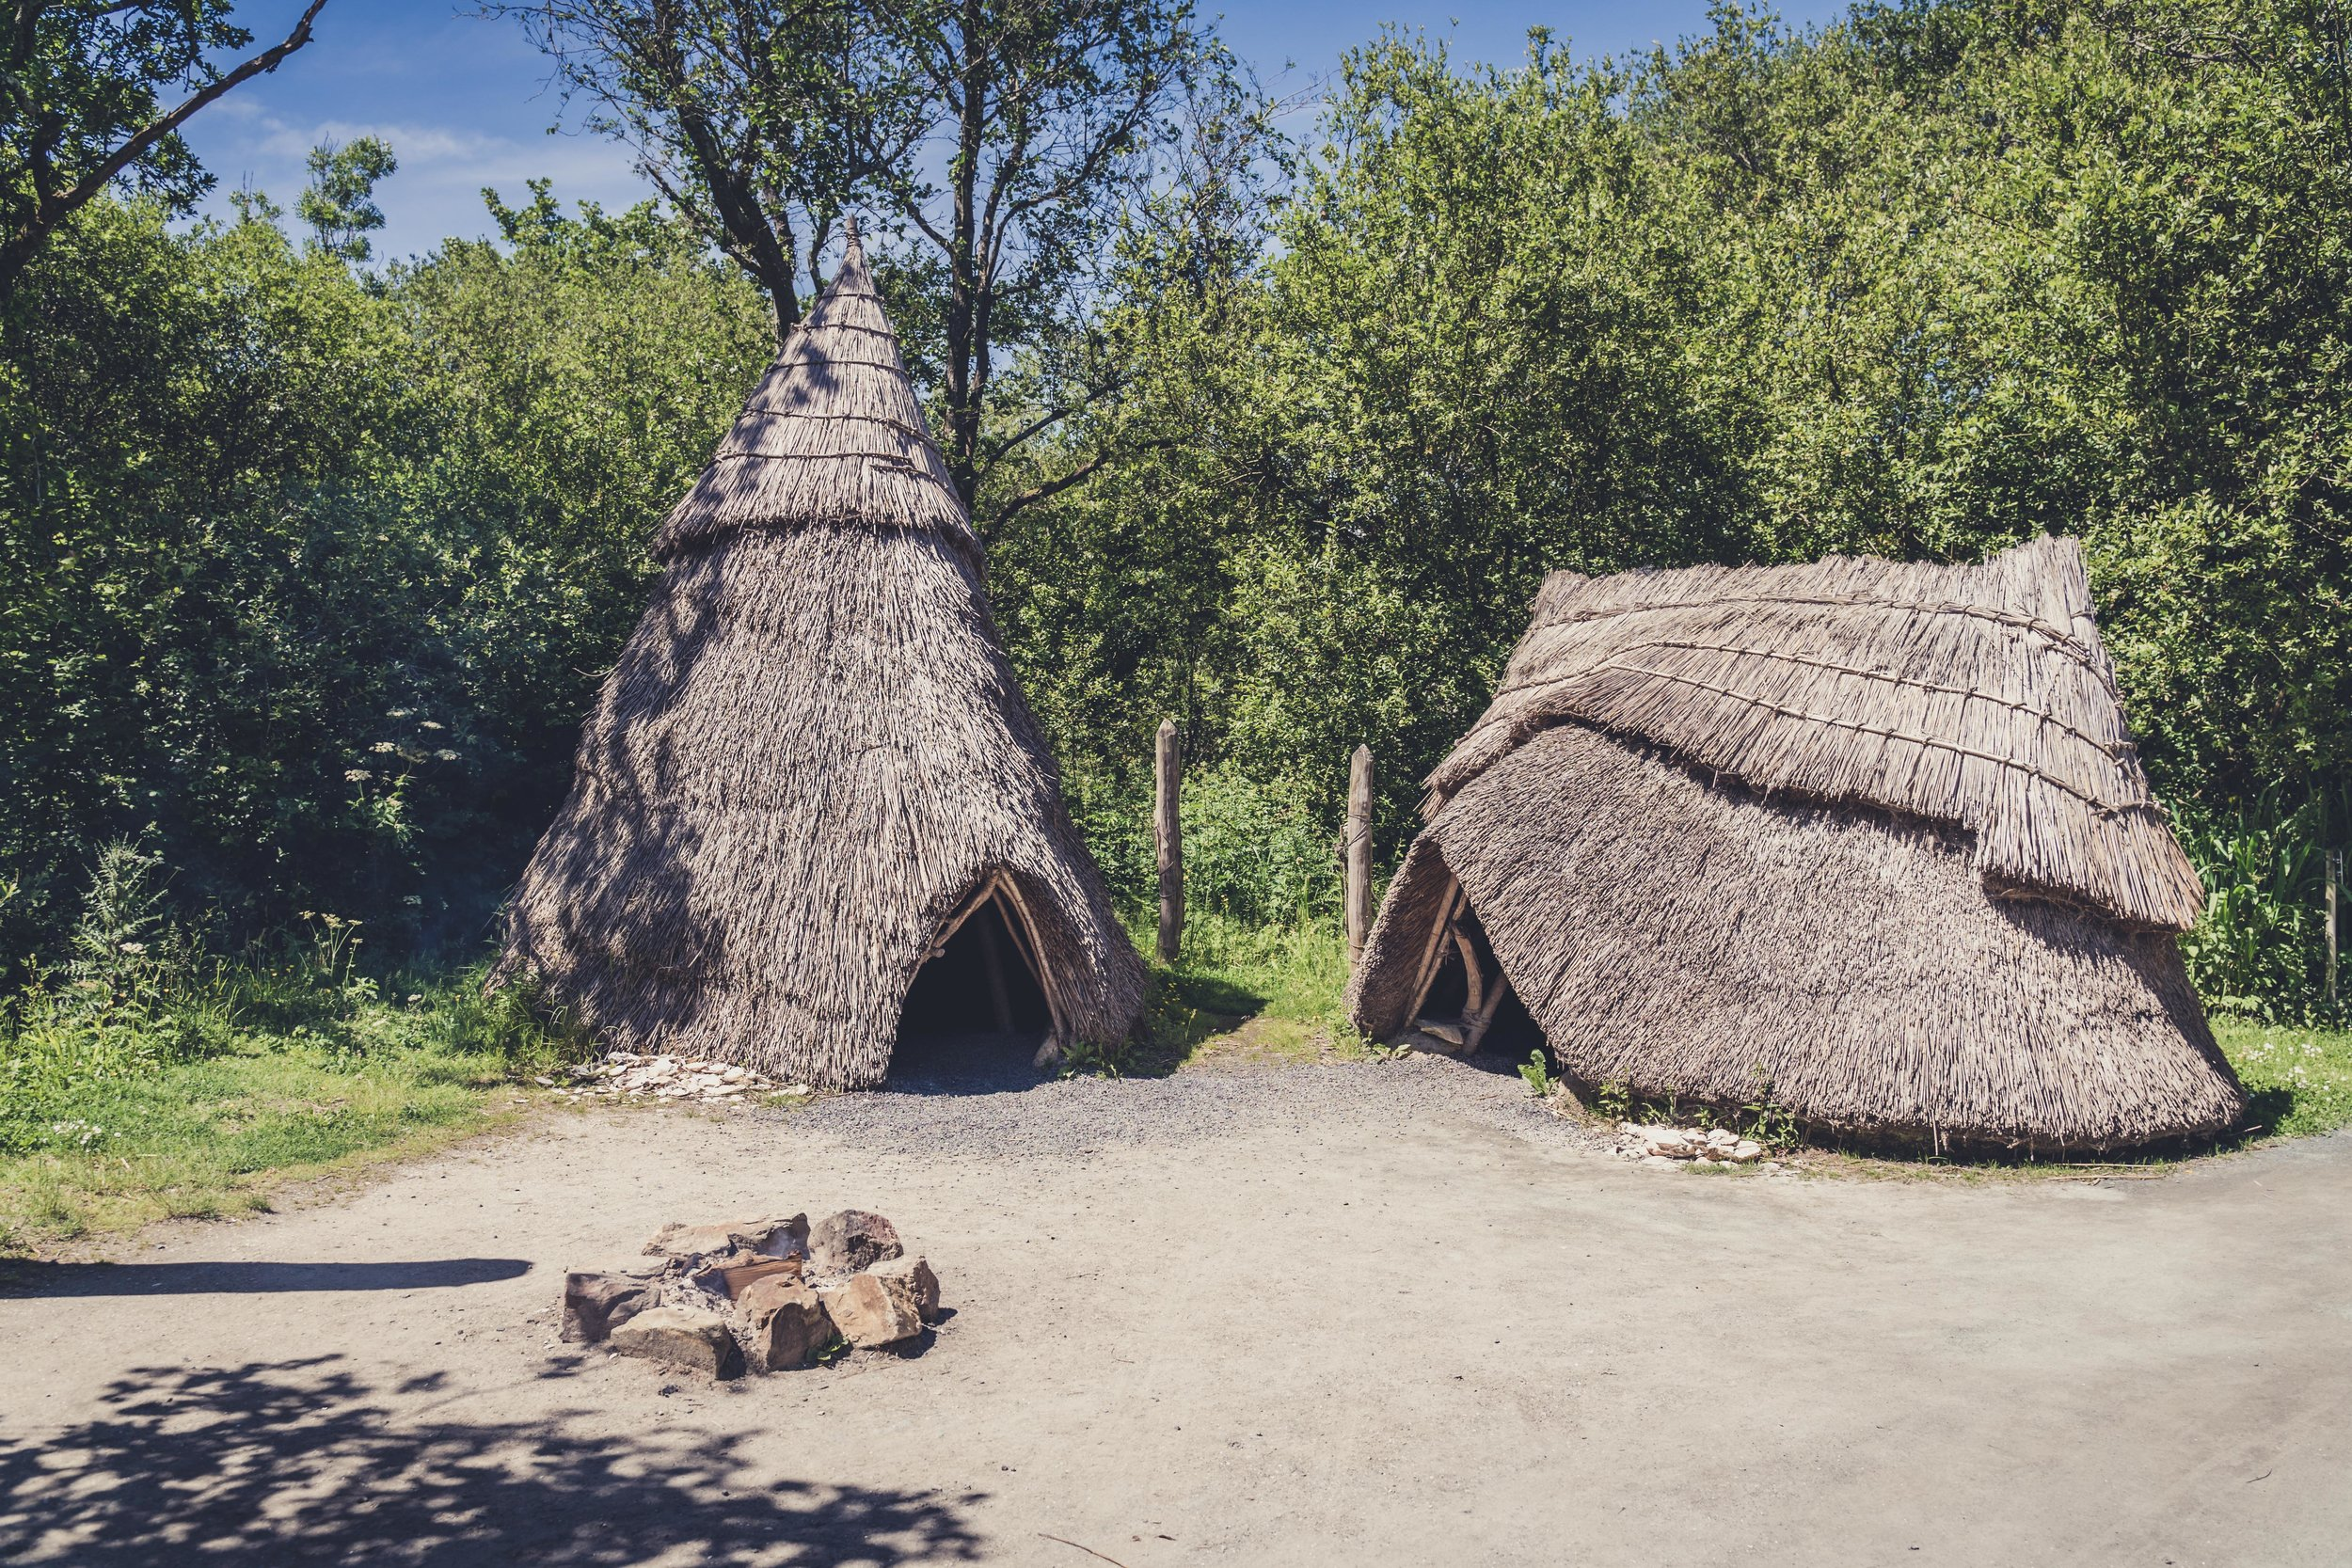 wexford heritage centre ireland thatched house .jpg